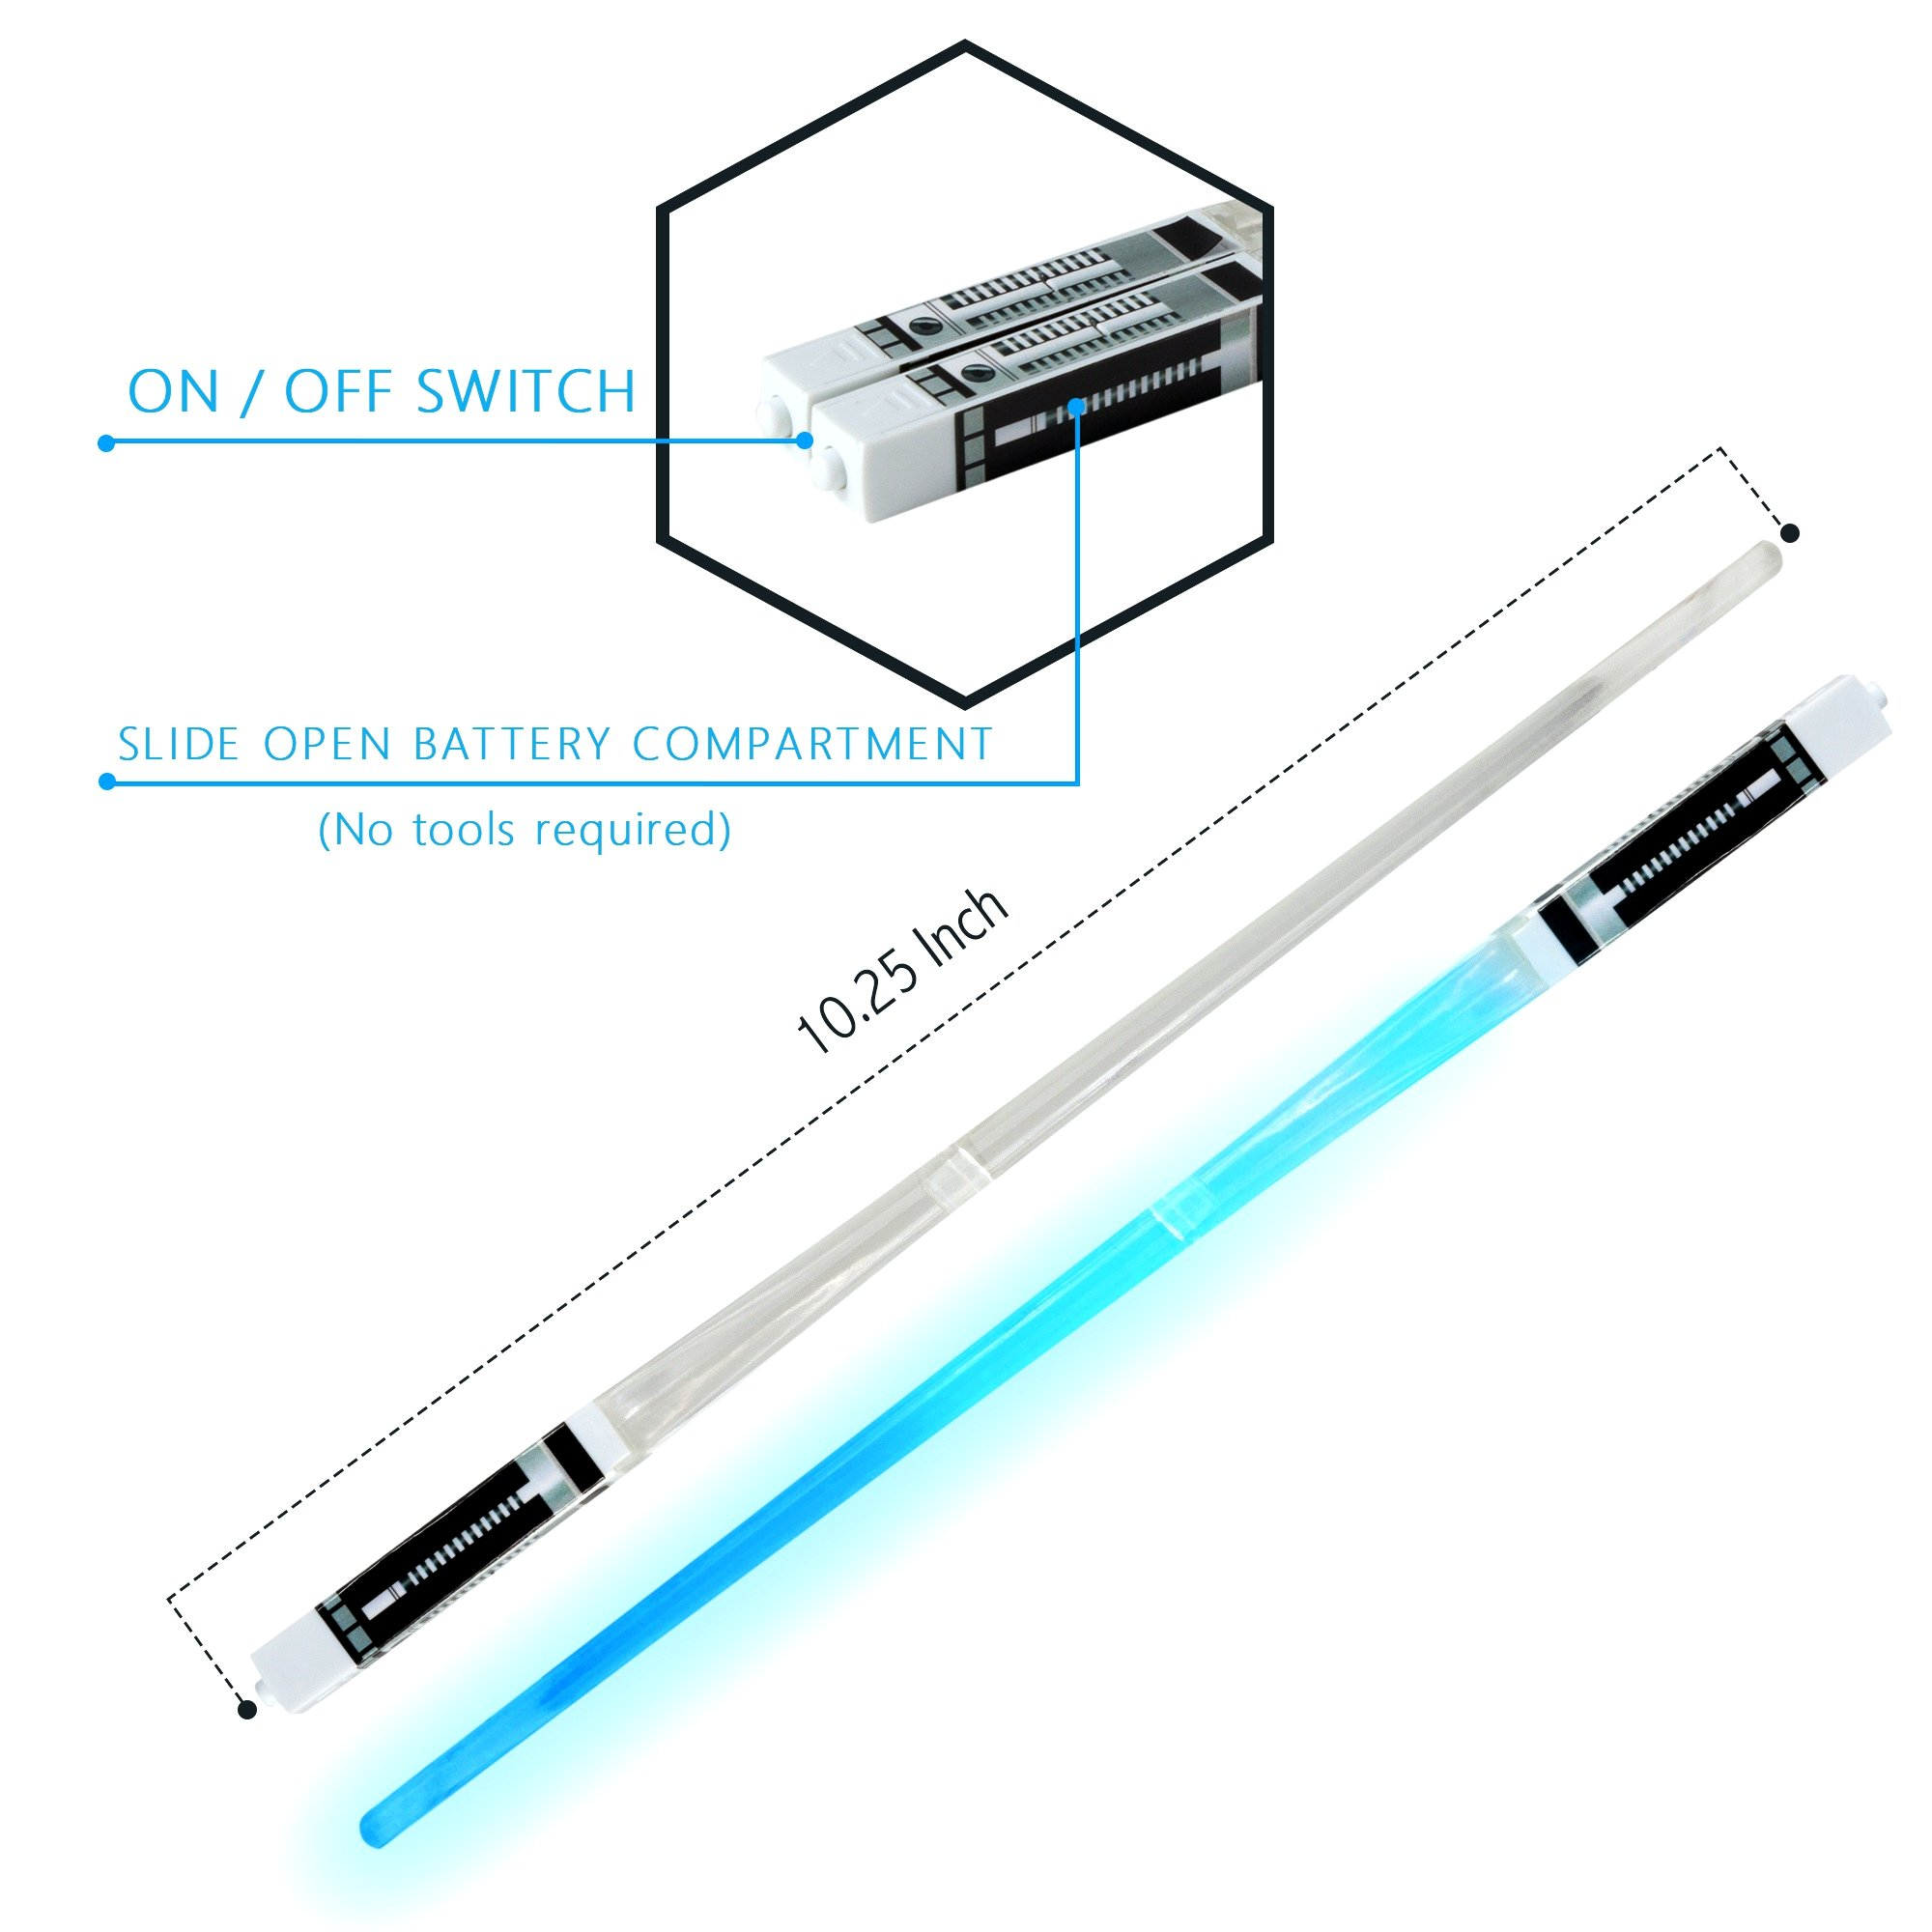 Lightsaber Light up LED Chopsticks Multi function for Star Wars Theme Party Fun for Gift Set [4 PAIR – RED/BLUE / GREEN/PURPLE SET] by Luxxis (Image #2)